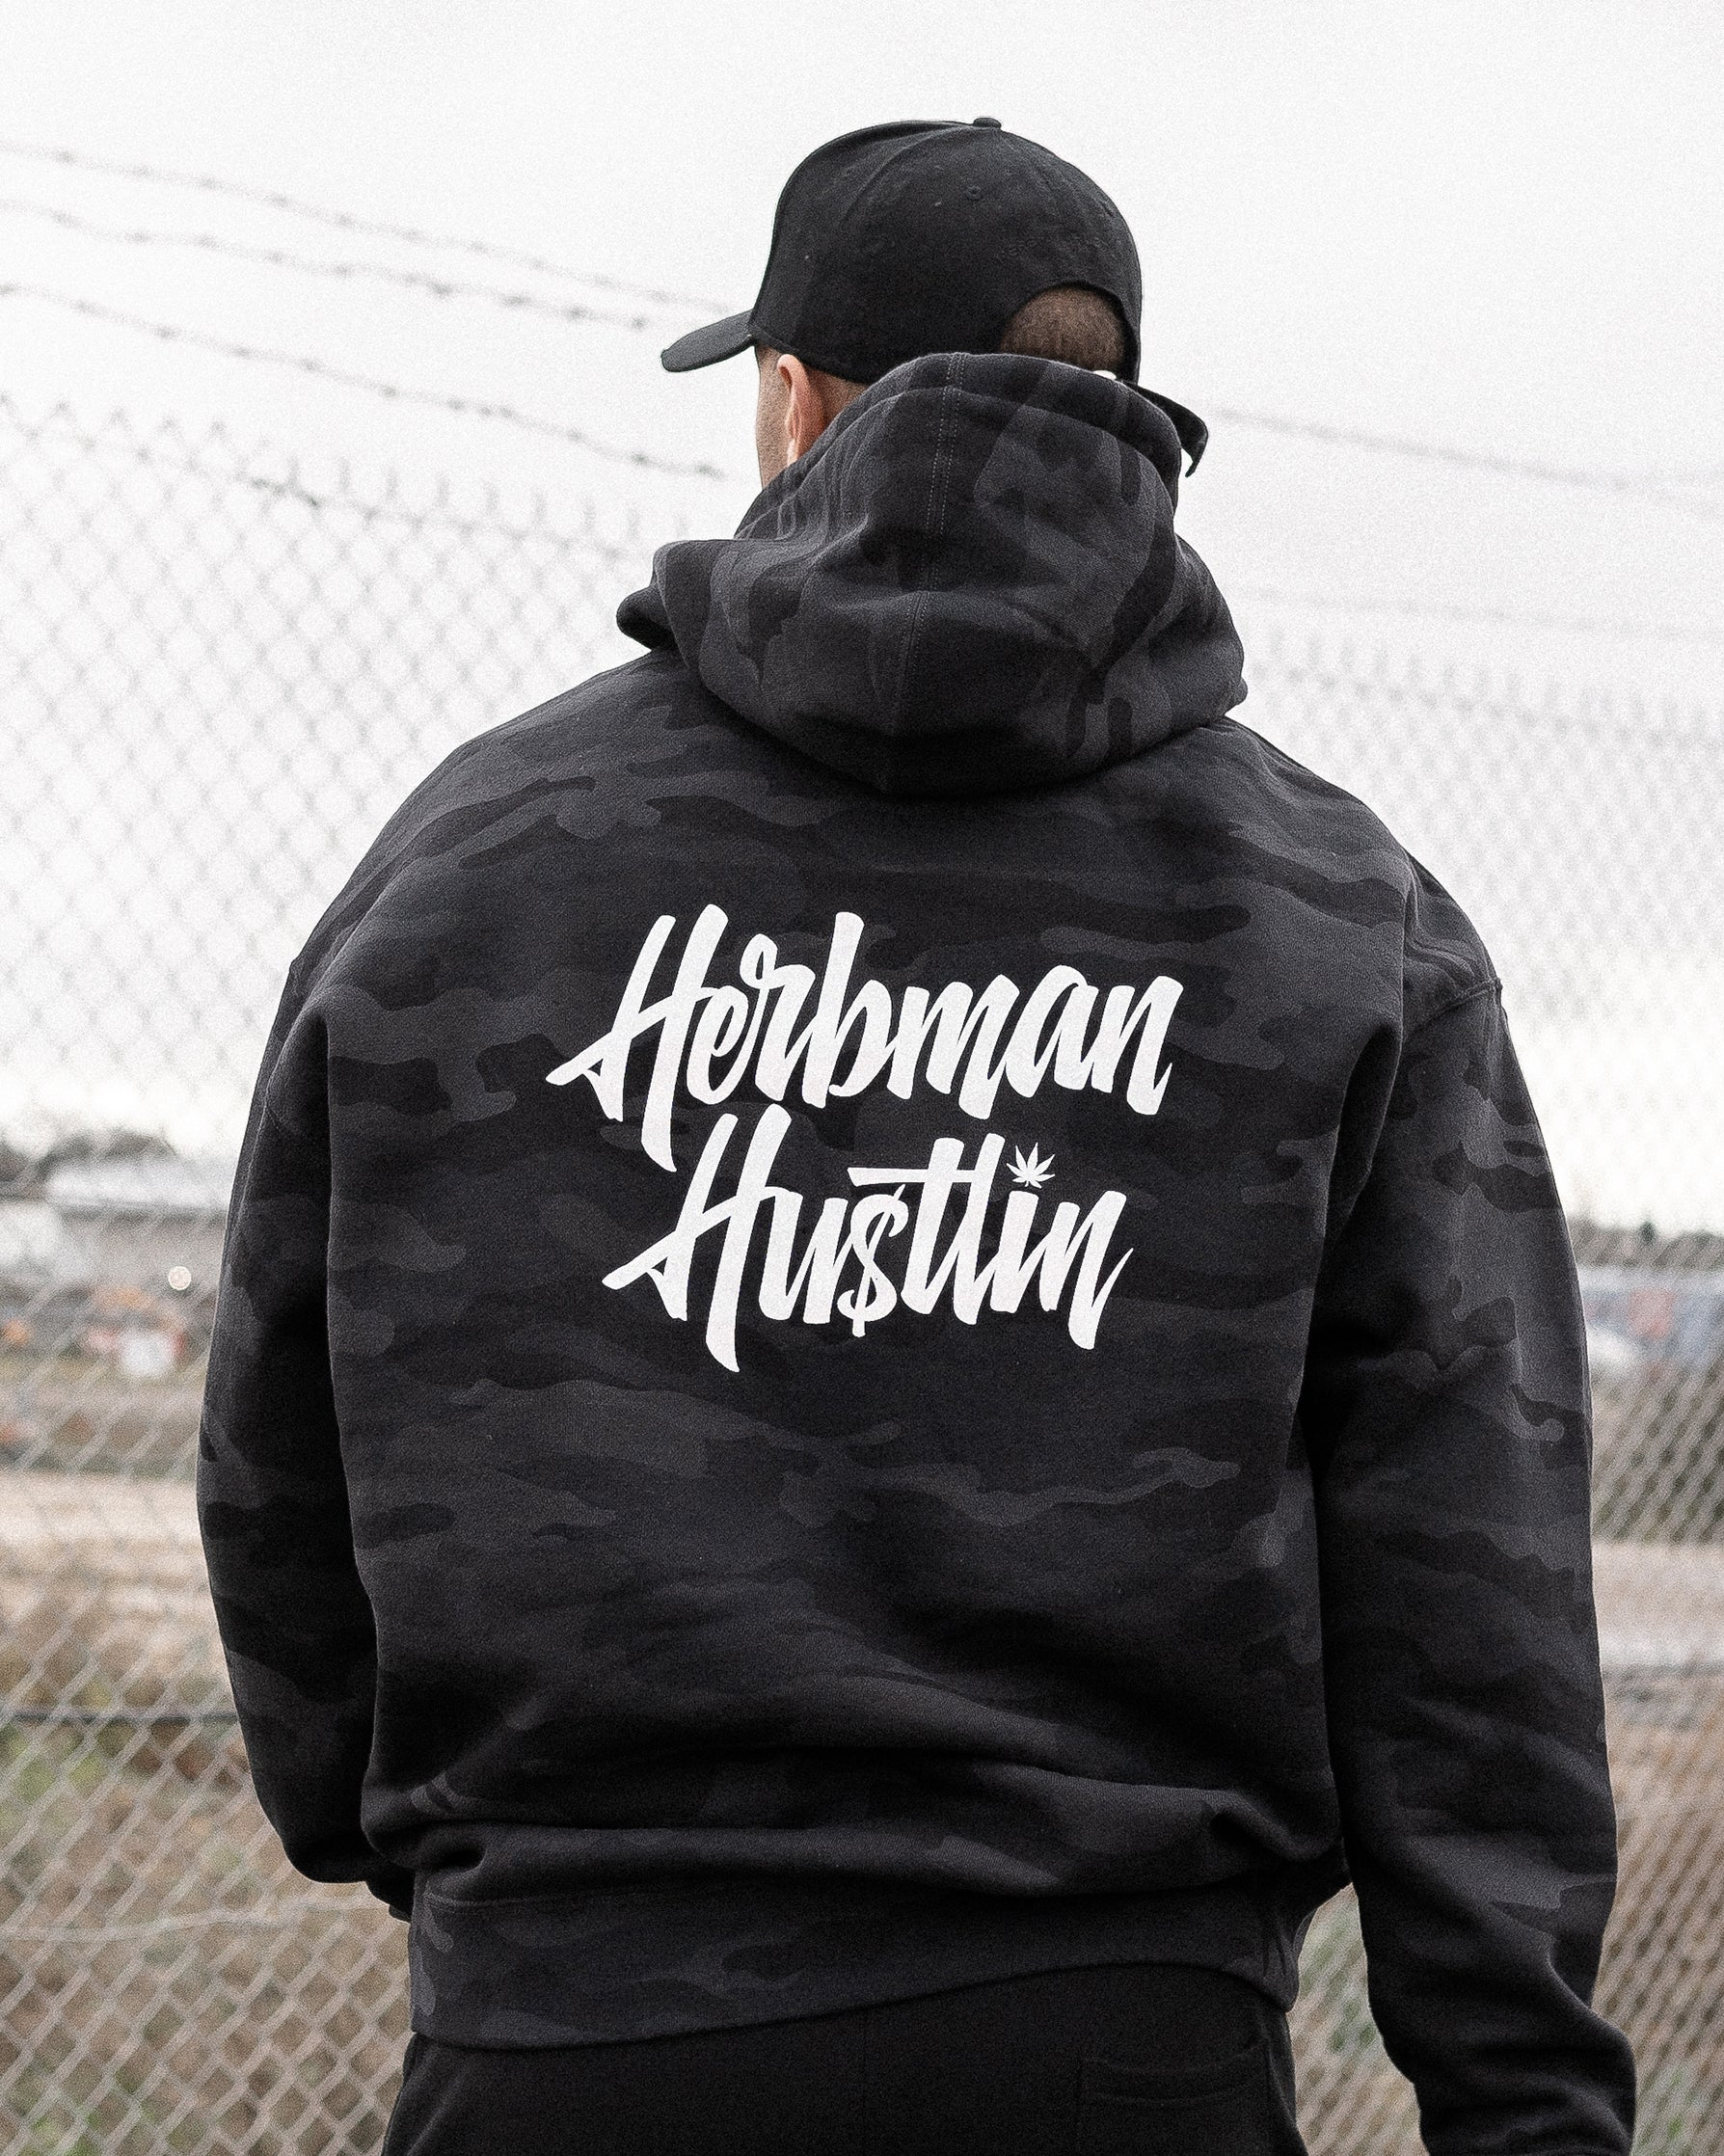 Herbman Hustlin Script Heavyweight Hoodie - Black Camo/White